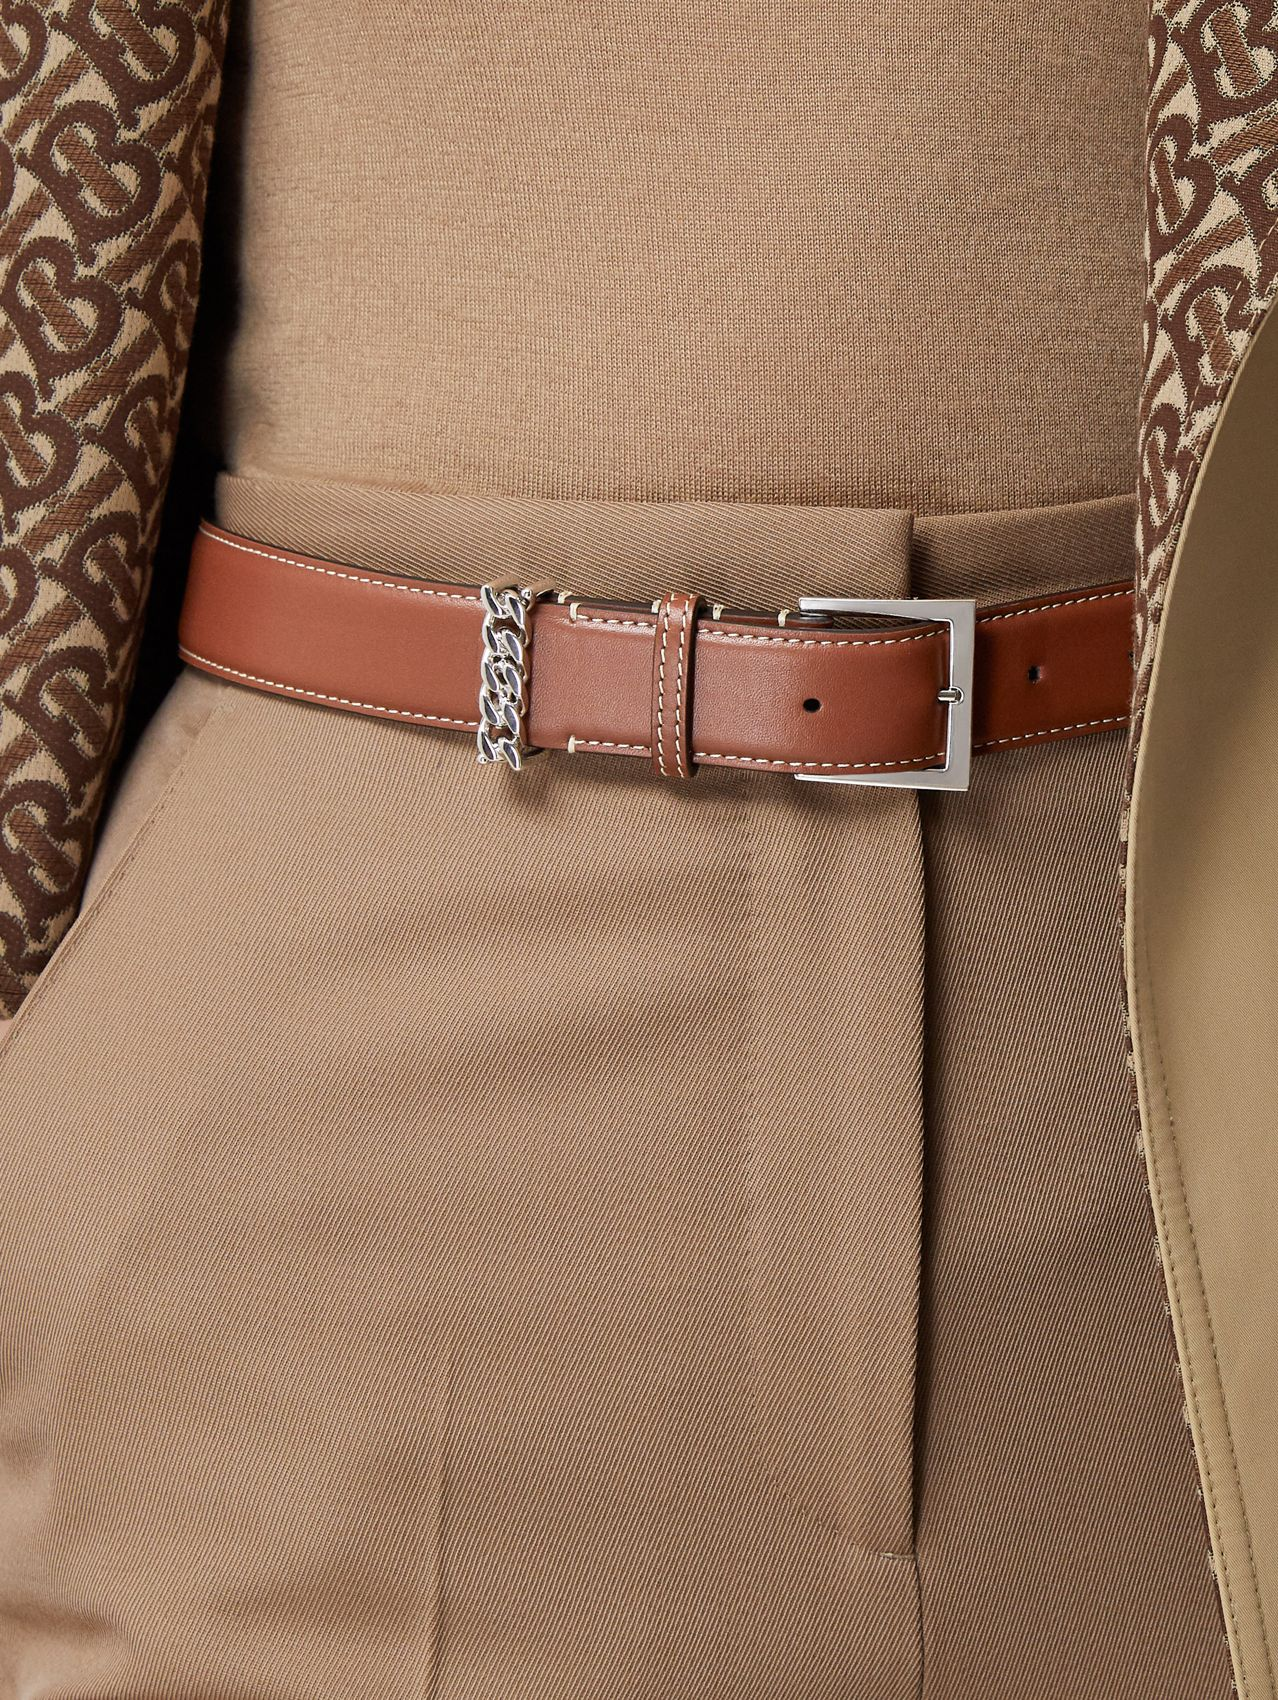 Chain Detail Topstitched Leather Belt in Tan/ecru